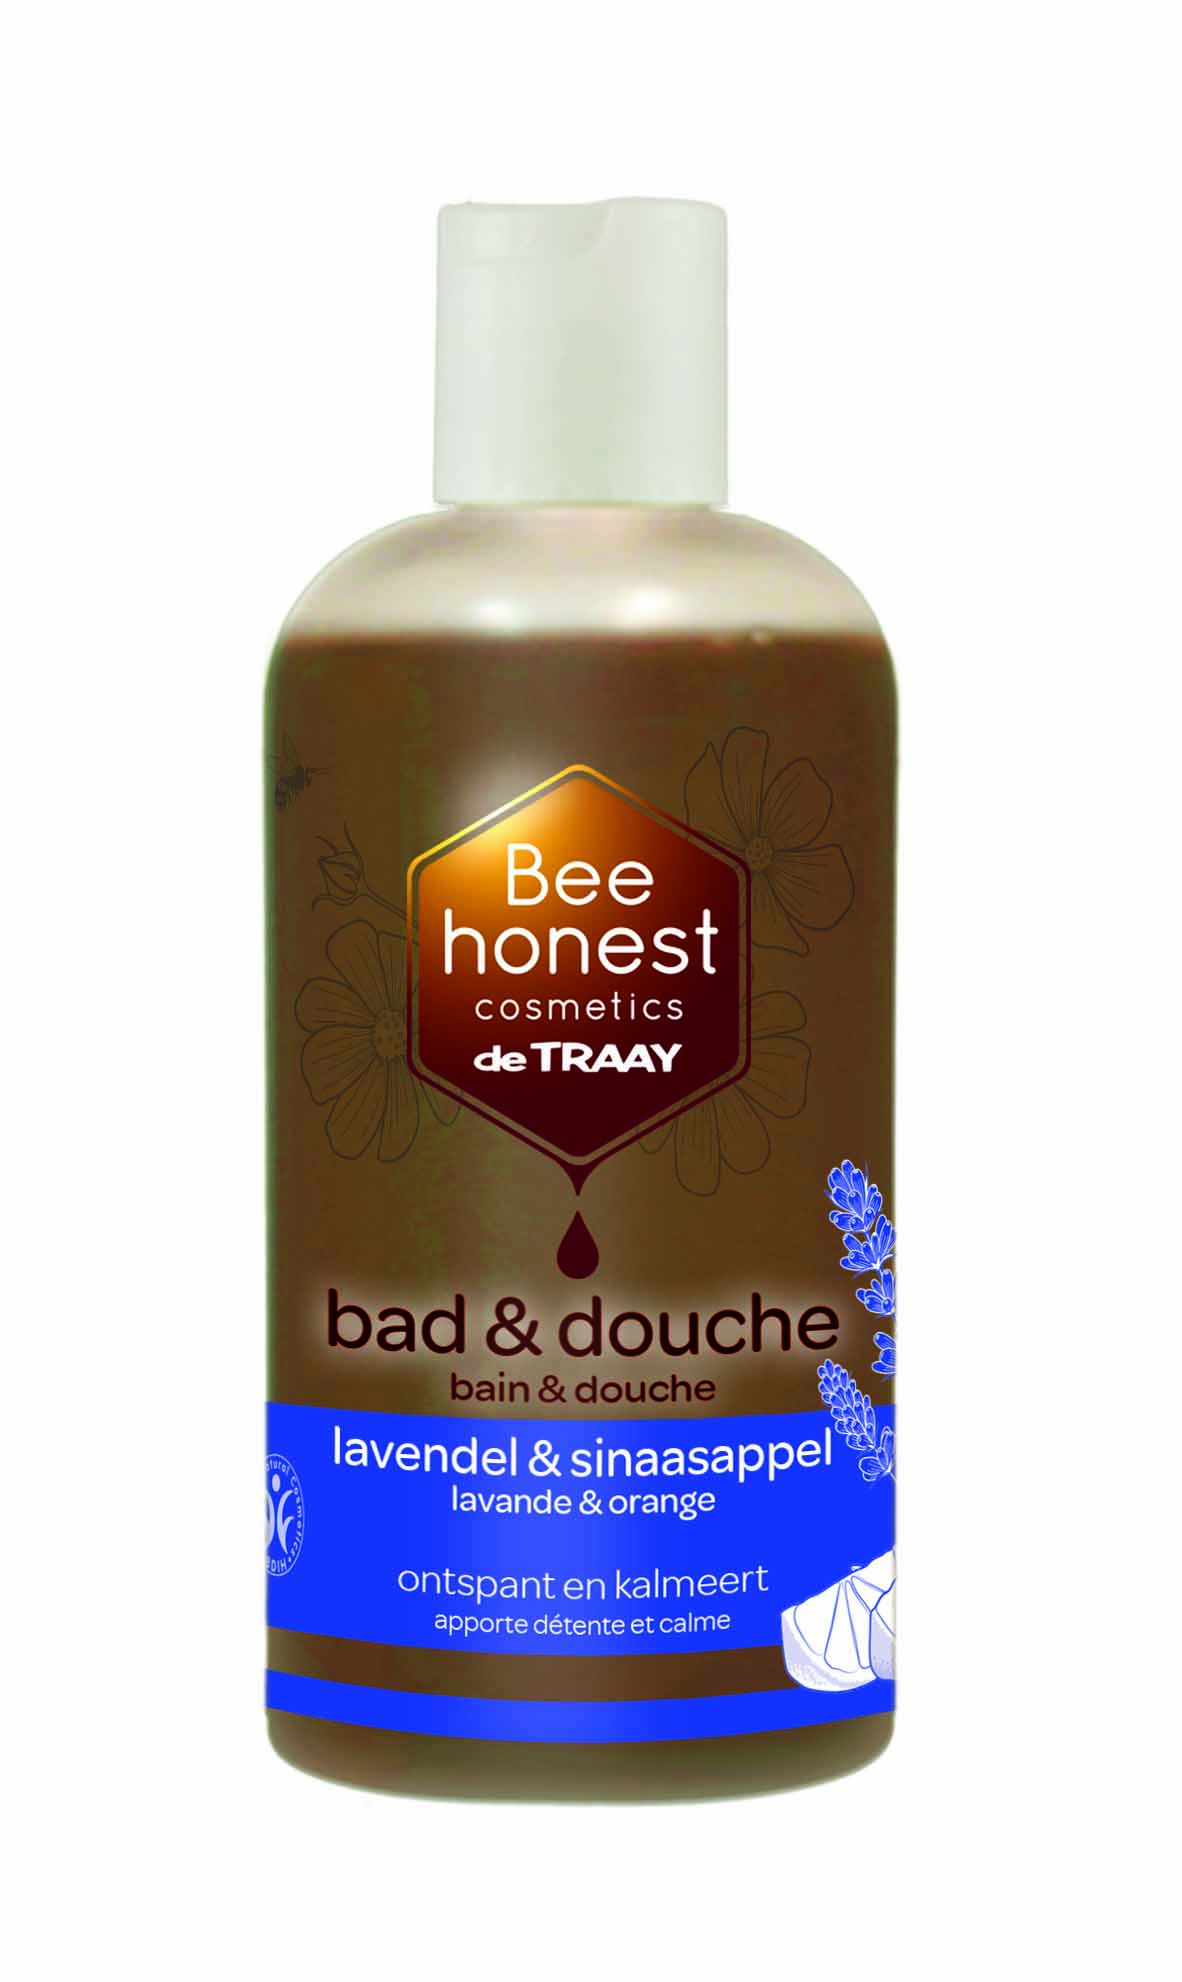 Bad & douche lavendel & sinaasappel 250ml